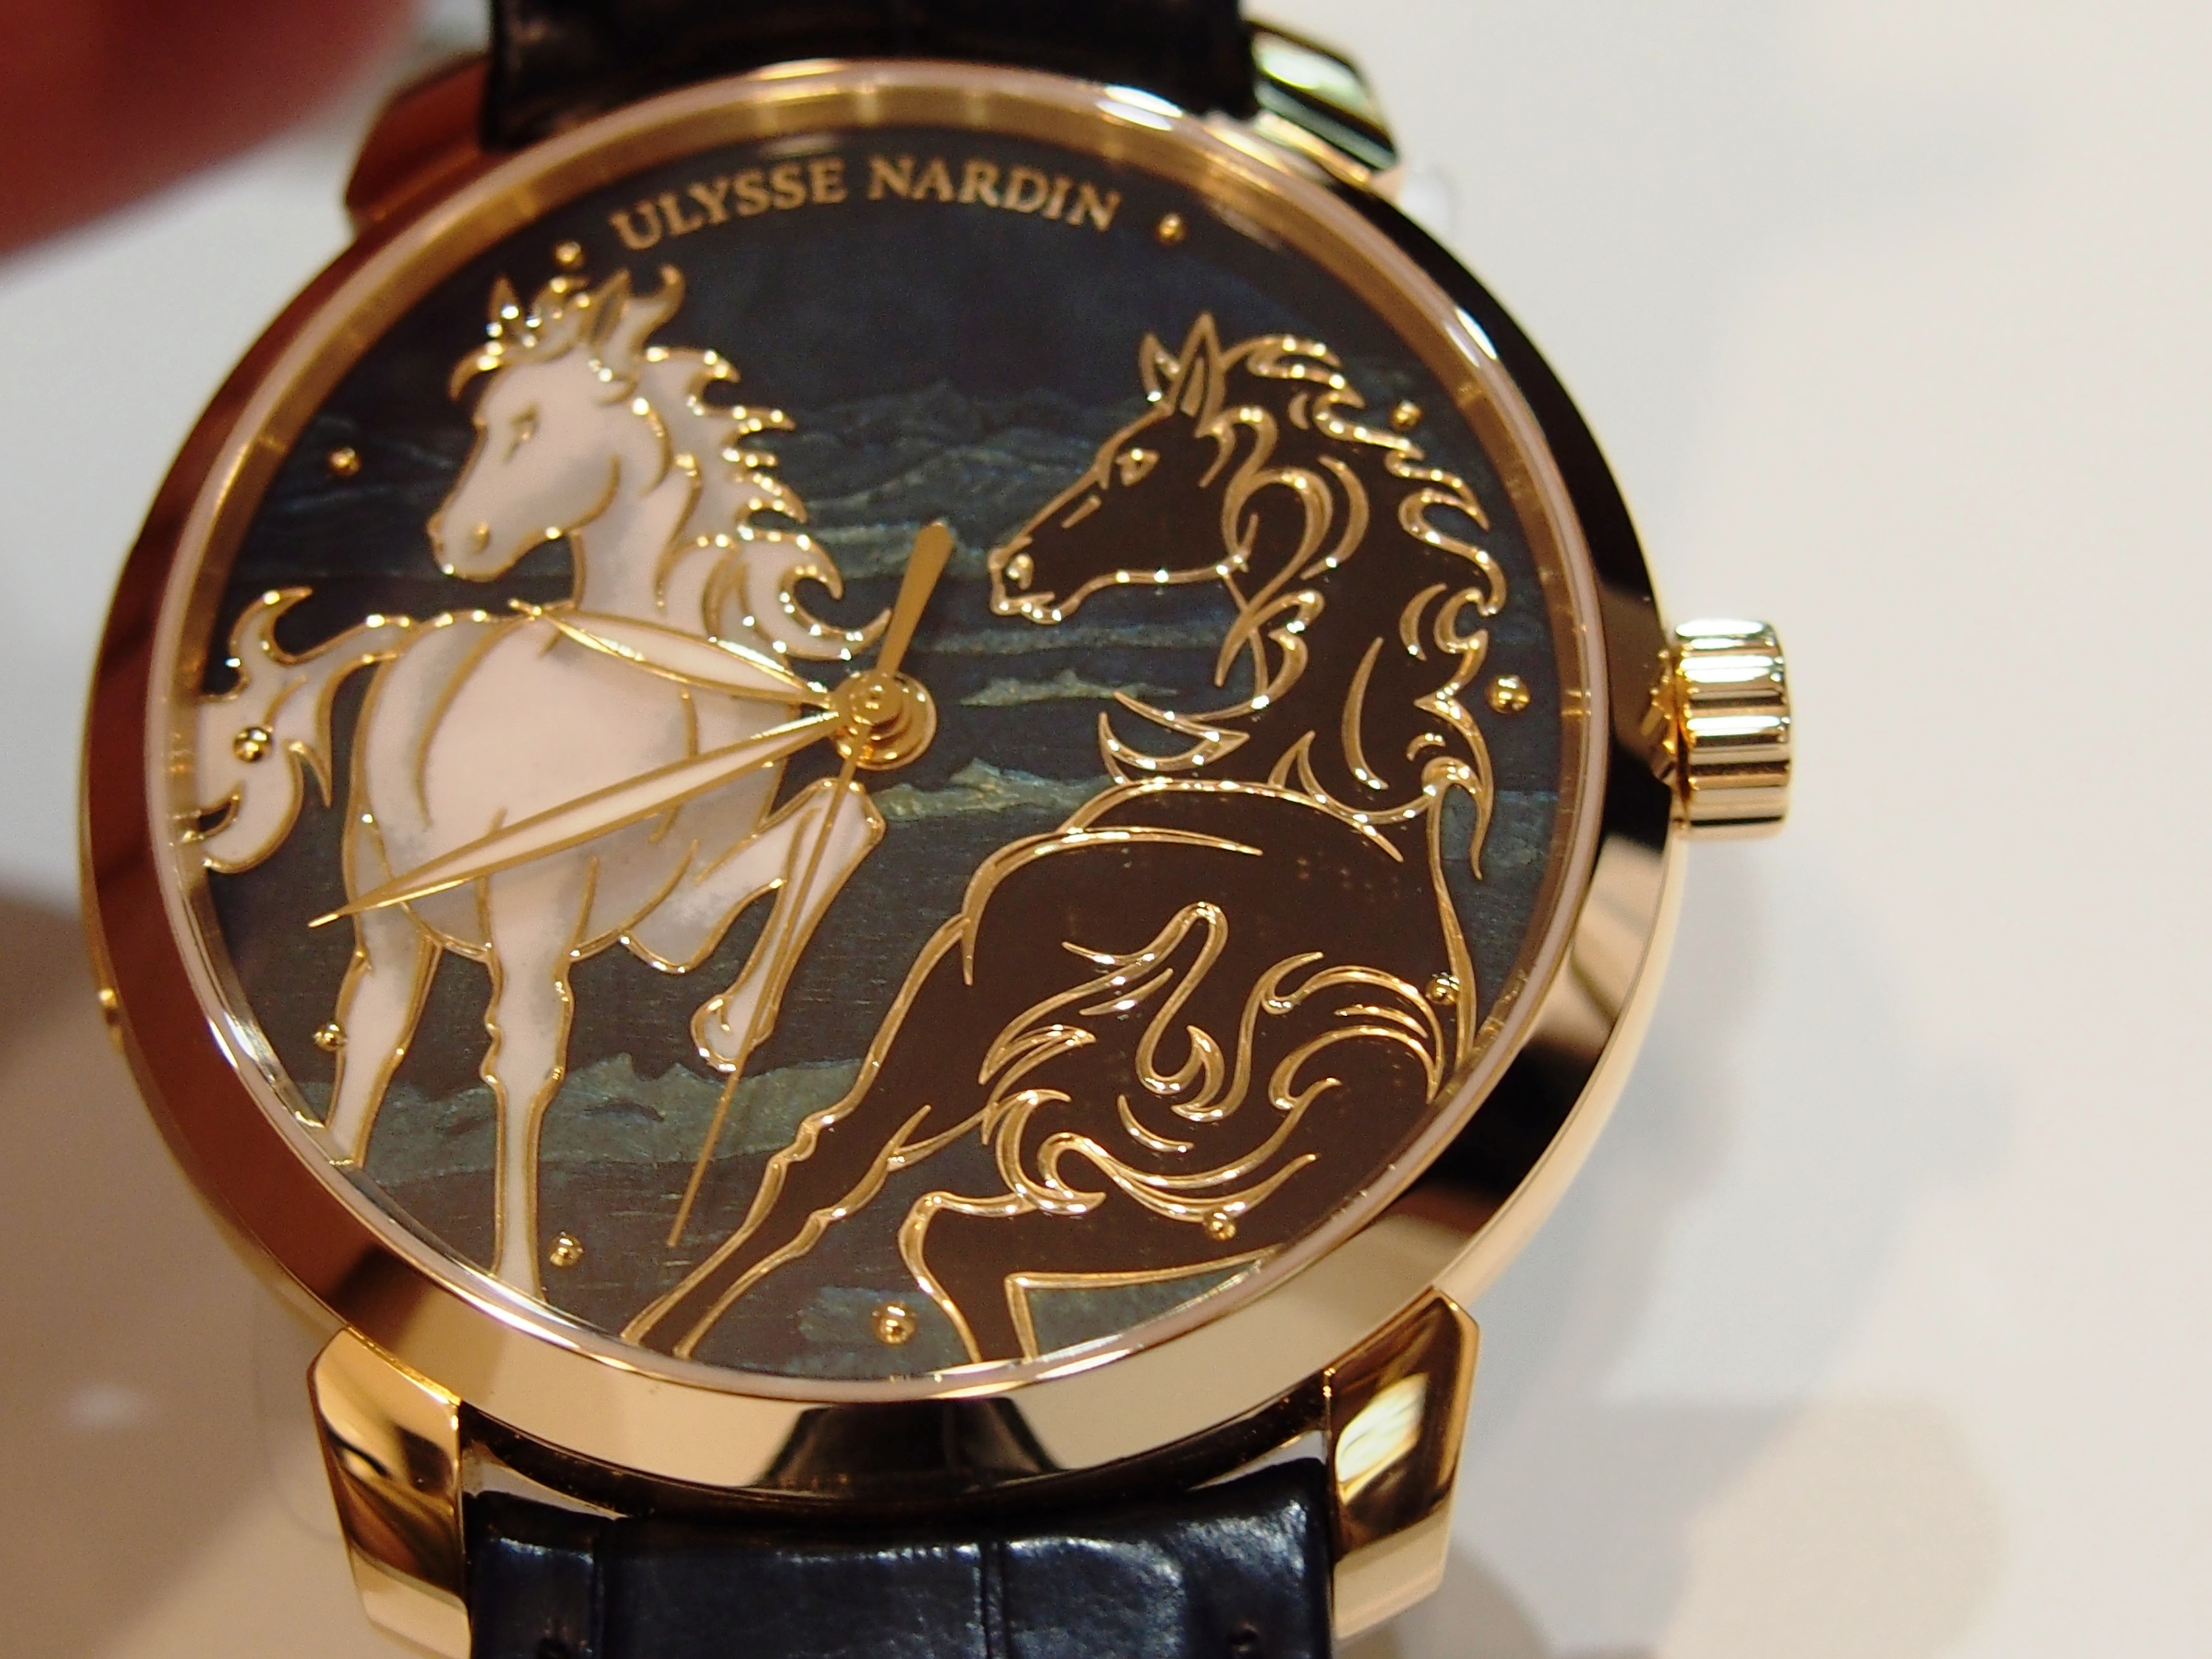 The Ulysse Nardin Classico Horse features an individually hand-enameled dial.